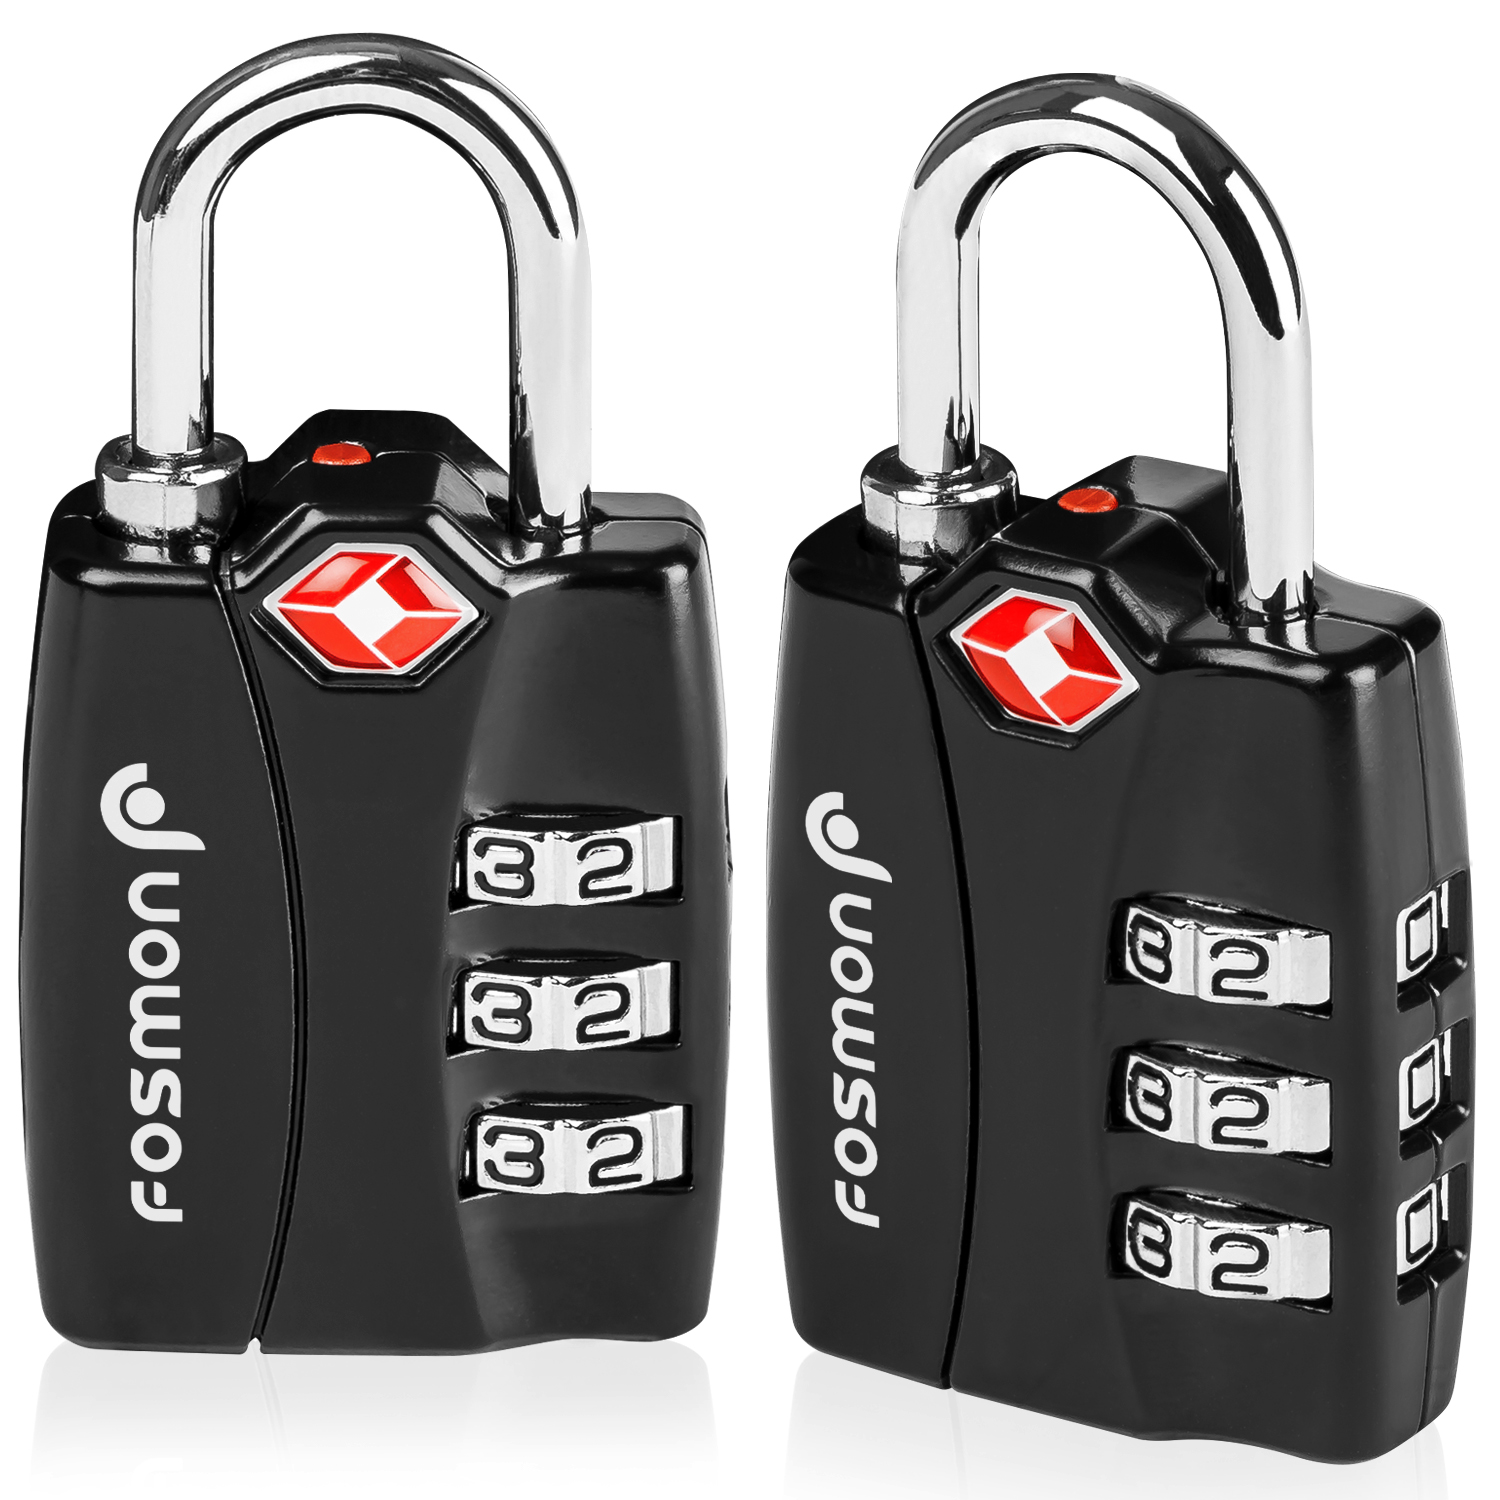 TSA Approved Luggage Locks, Fosmon (2 Pack) Open Alert Indicator 3 Digit Combination Padlock Codes with Alloy Body